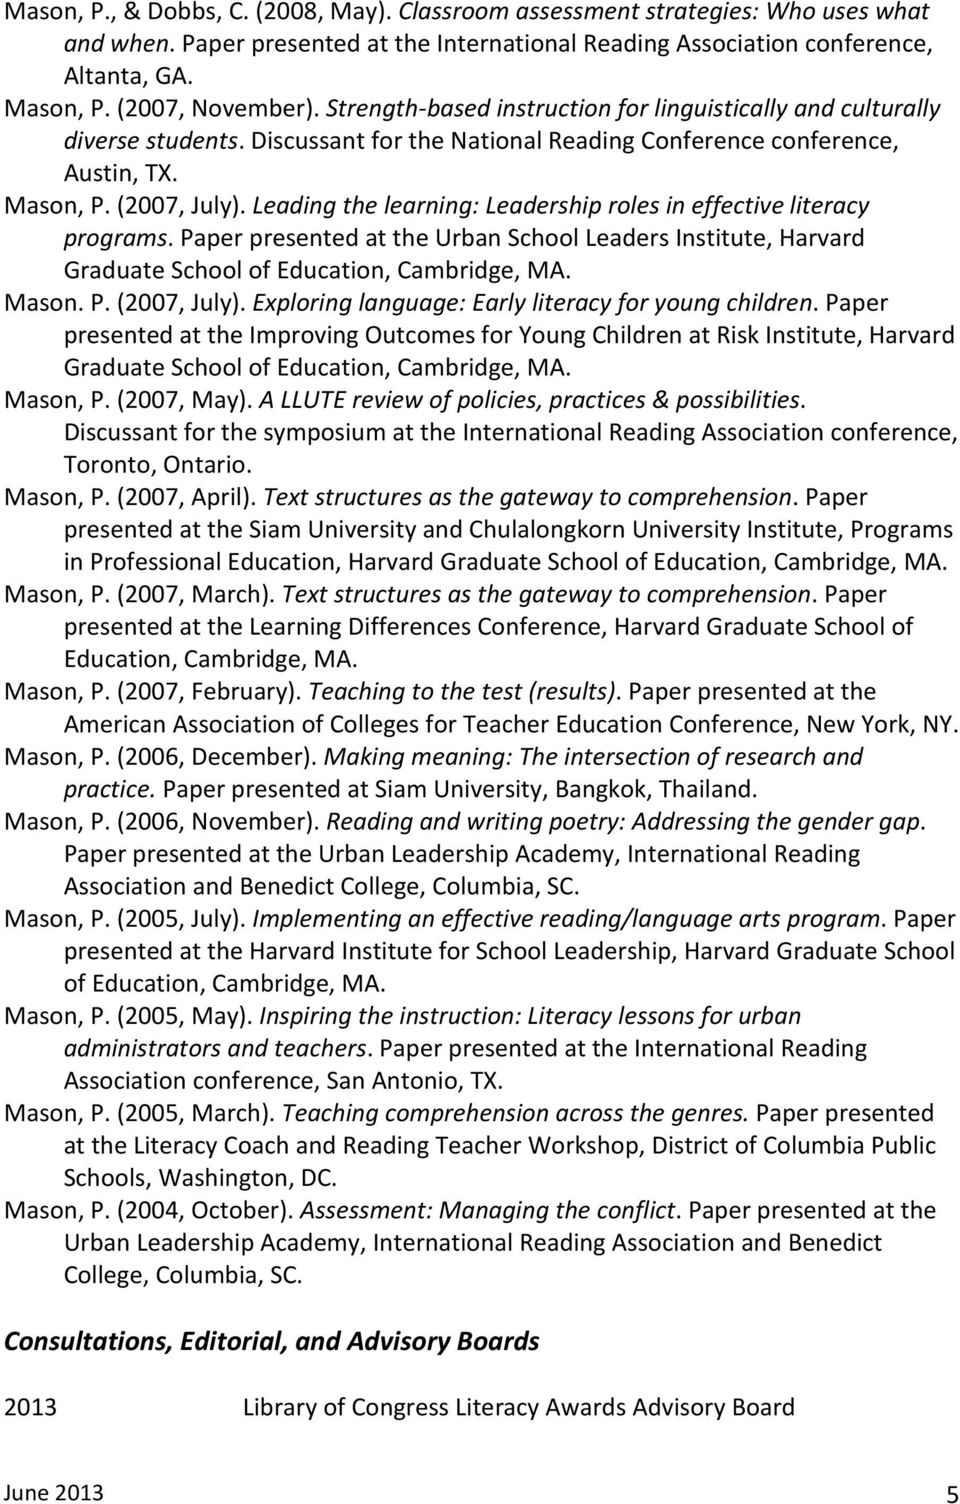 Leading the learning: Leadership roles in effective literacy programs. Paper presented at the Urban School Leaders Institute, Harvard Graduate School of Education, Cambridge, MA. Mason. P. (2007, July).